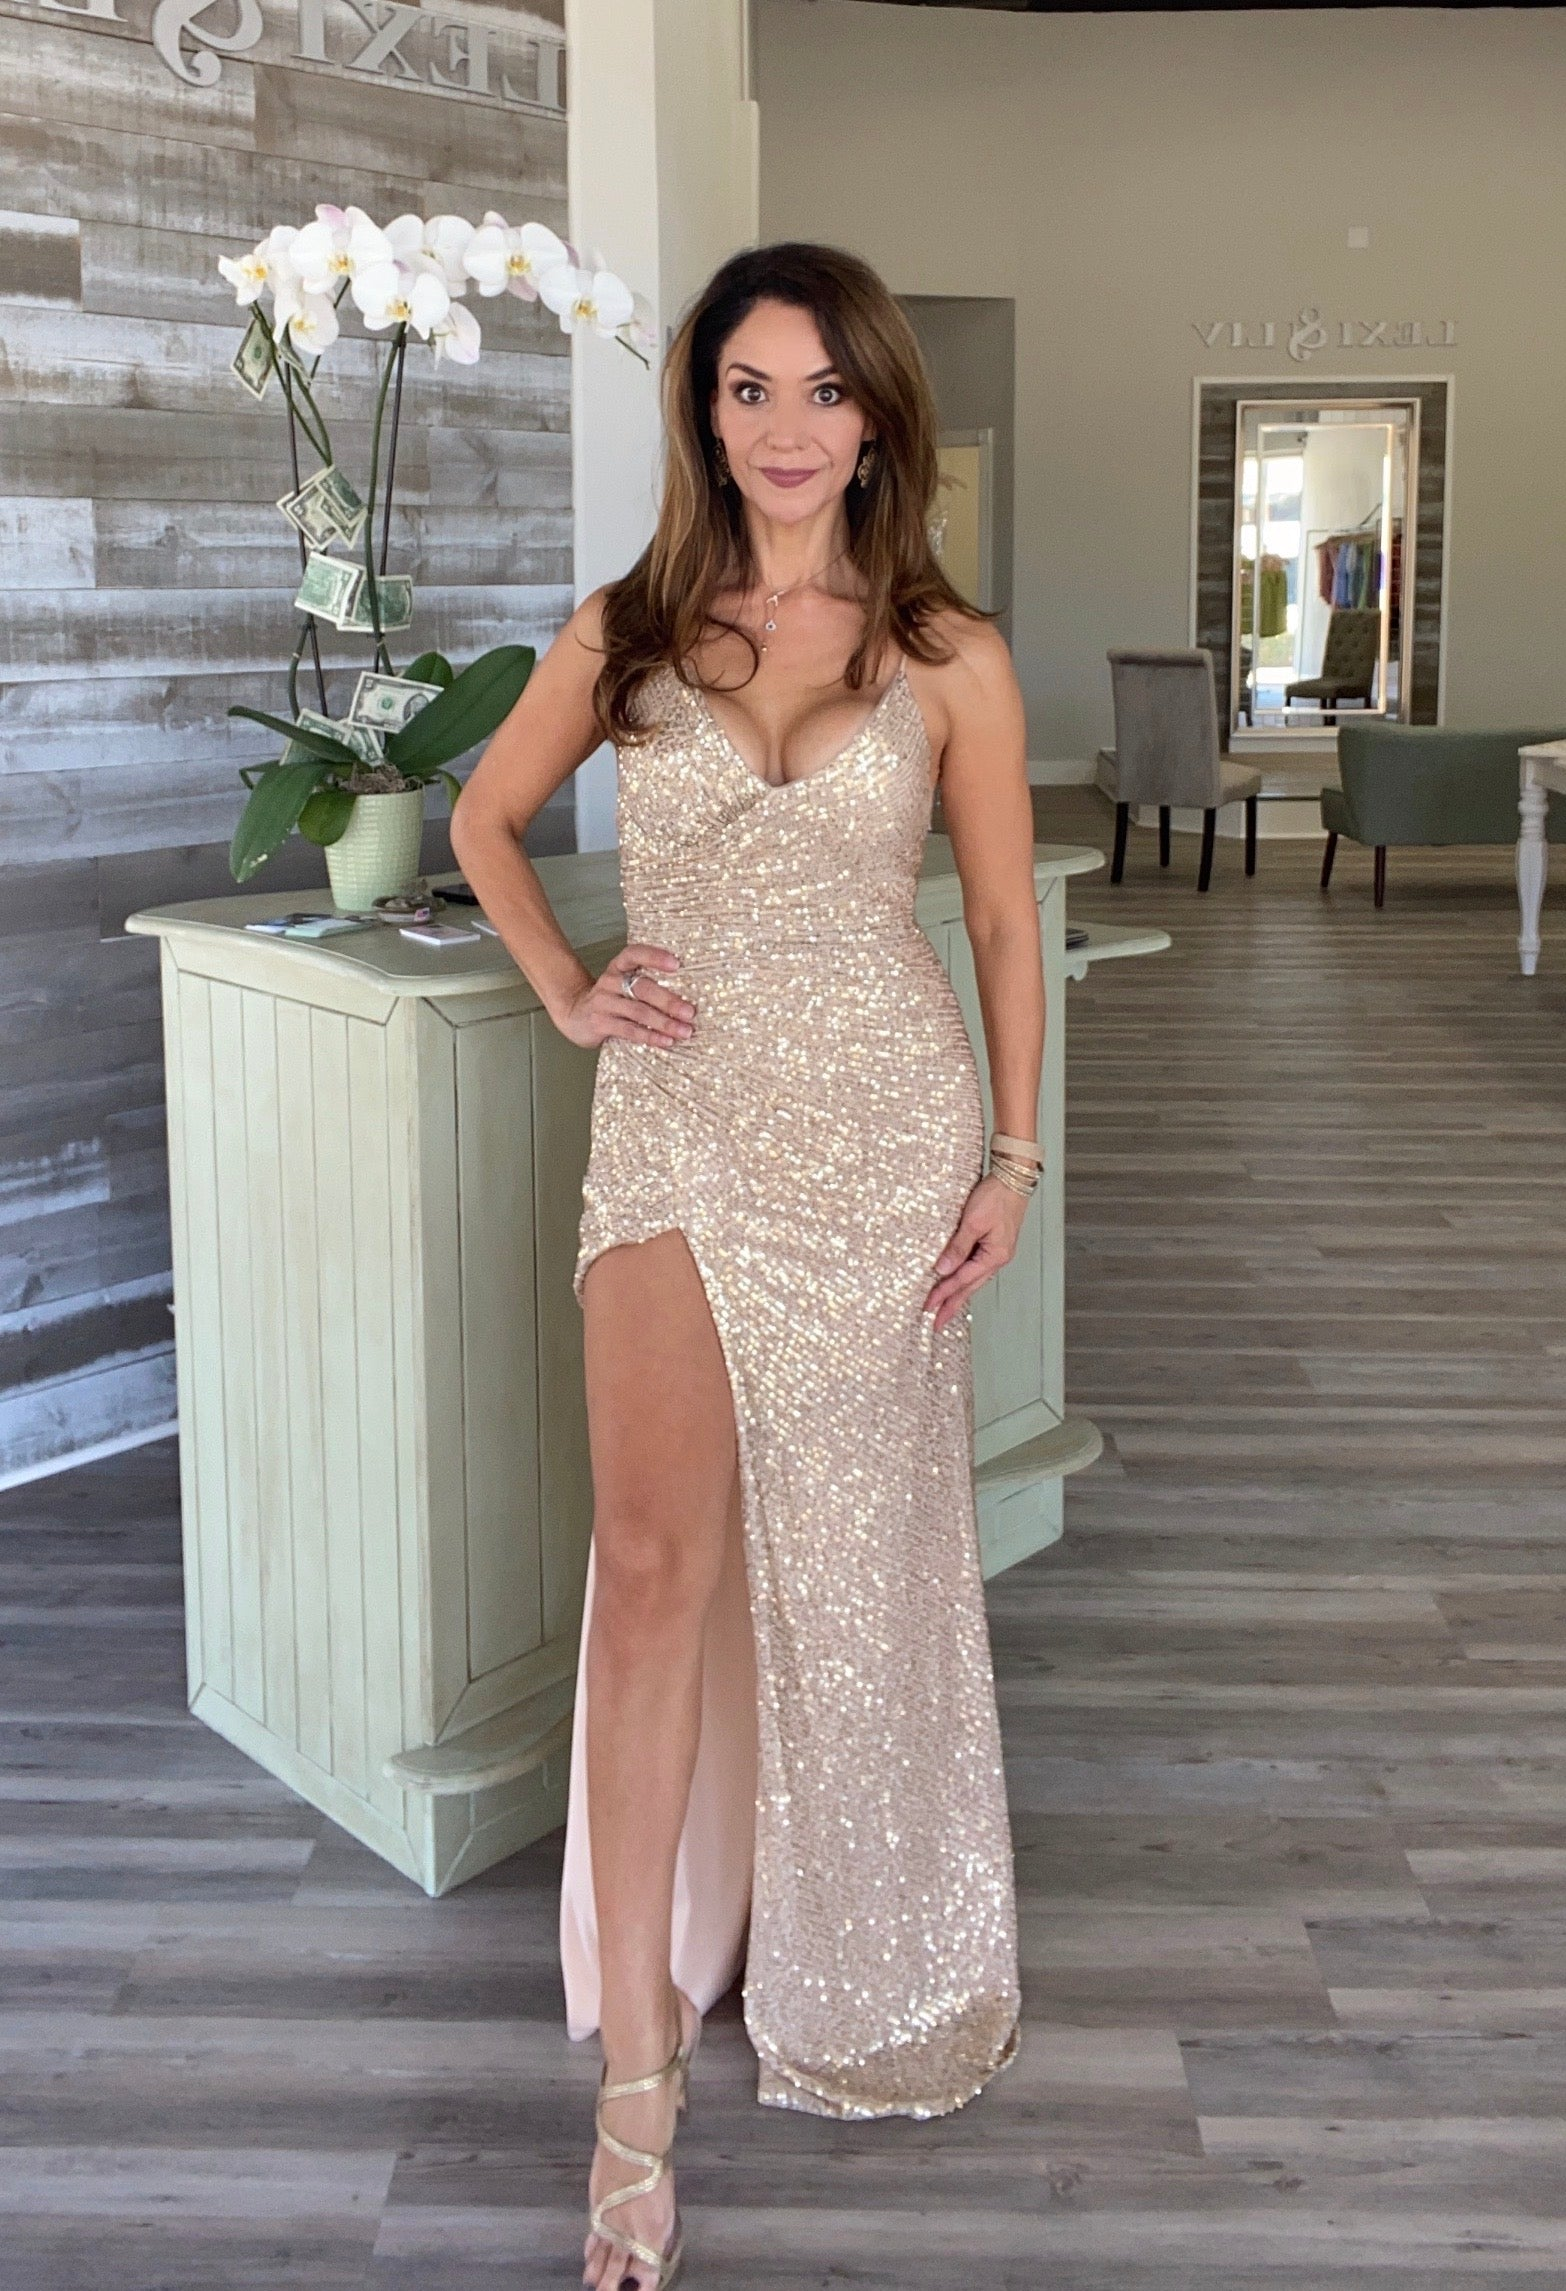 GOLD CHAMPAGNE FORMAL LONG SLIT DRESS